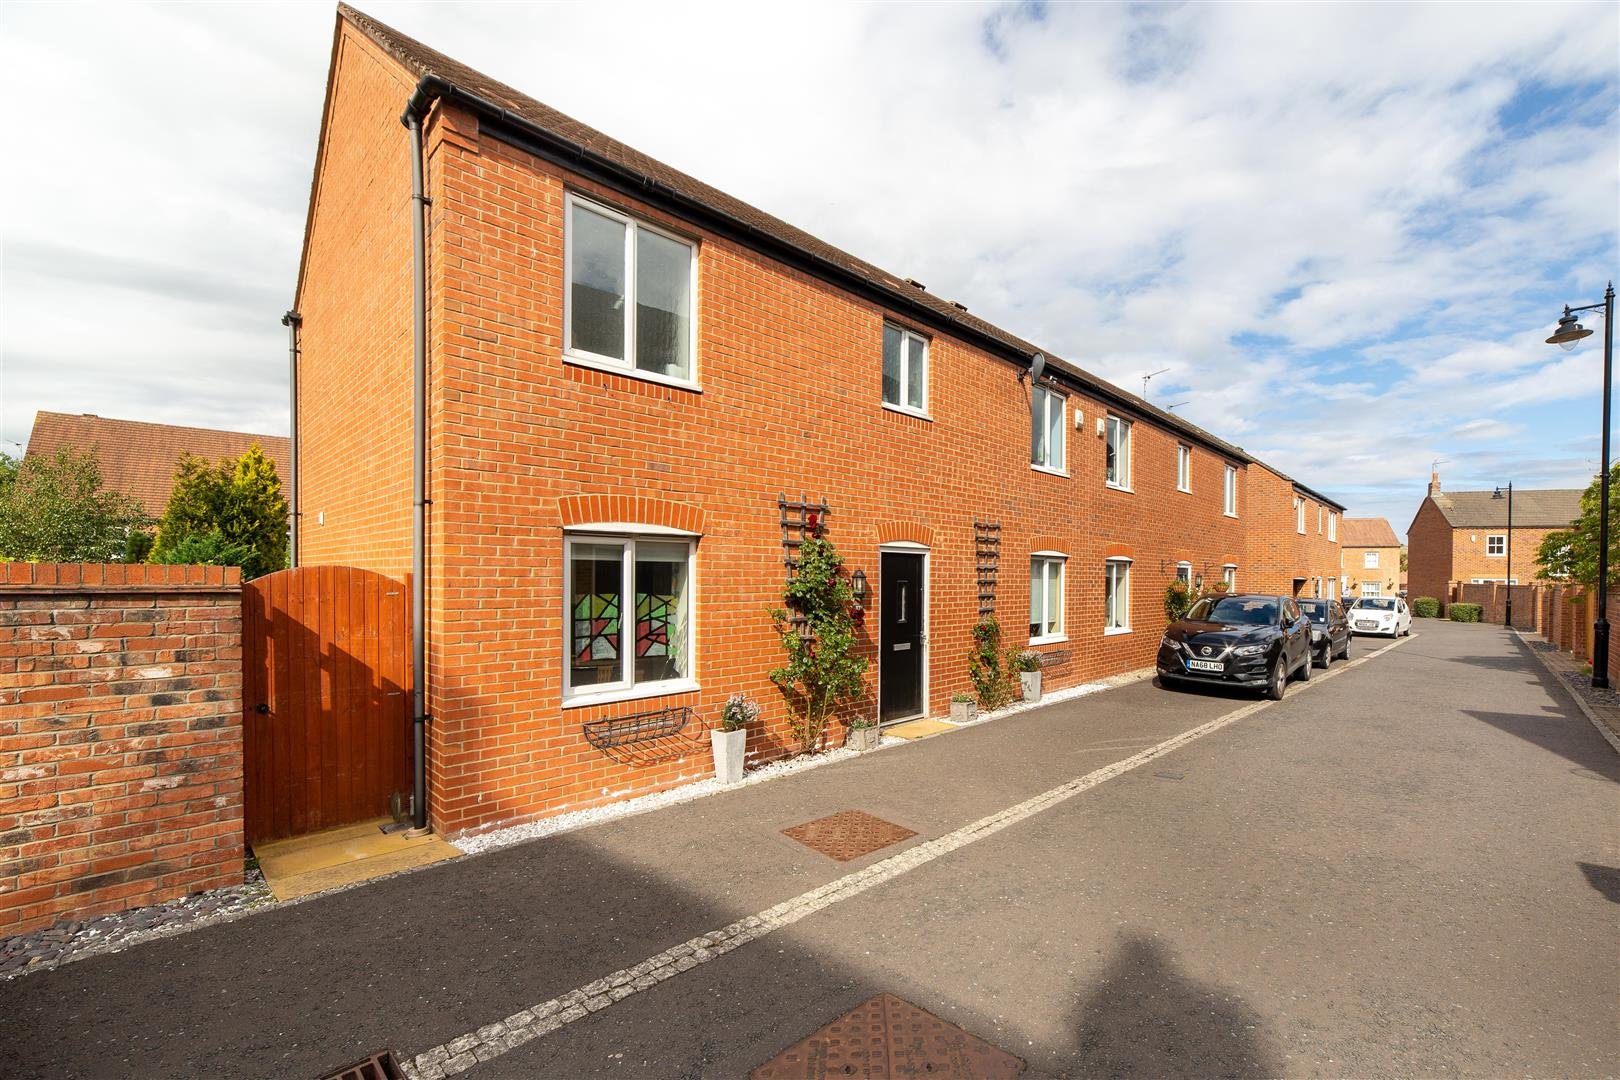 3 bed semi-detached house for sale in Great Park, NE3 5RB - Property Image 1